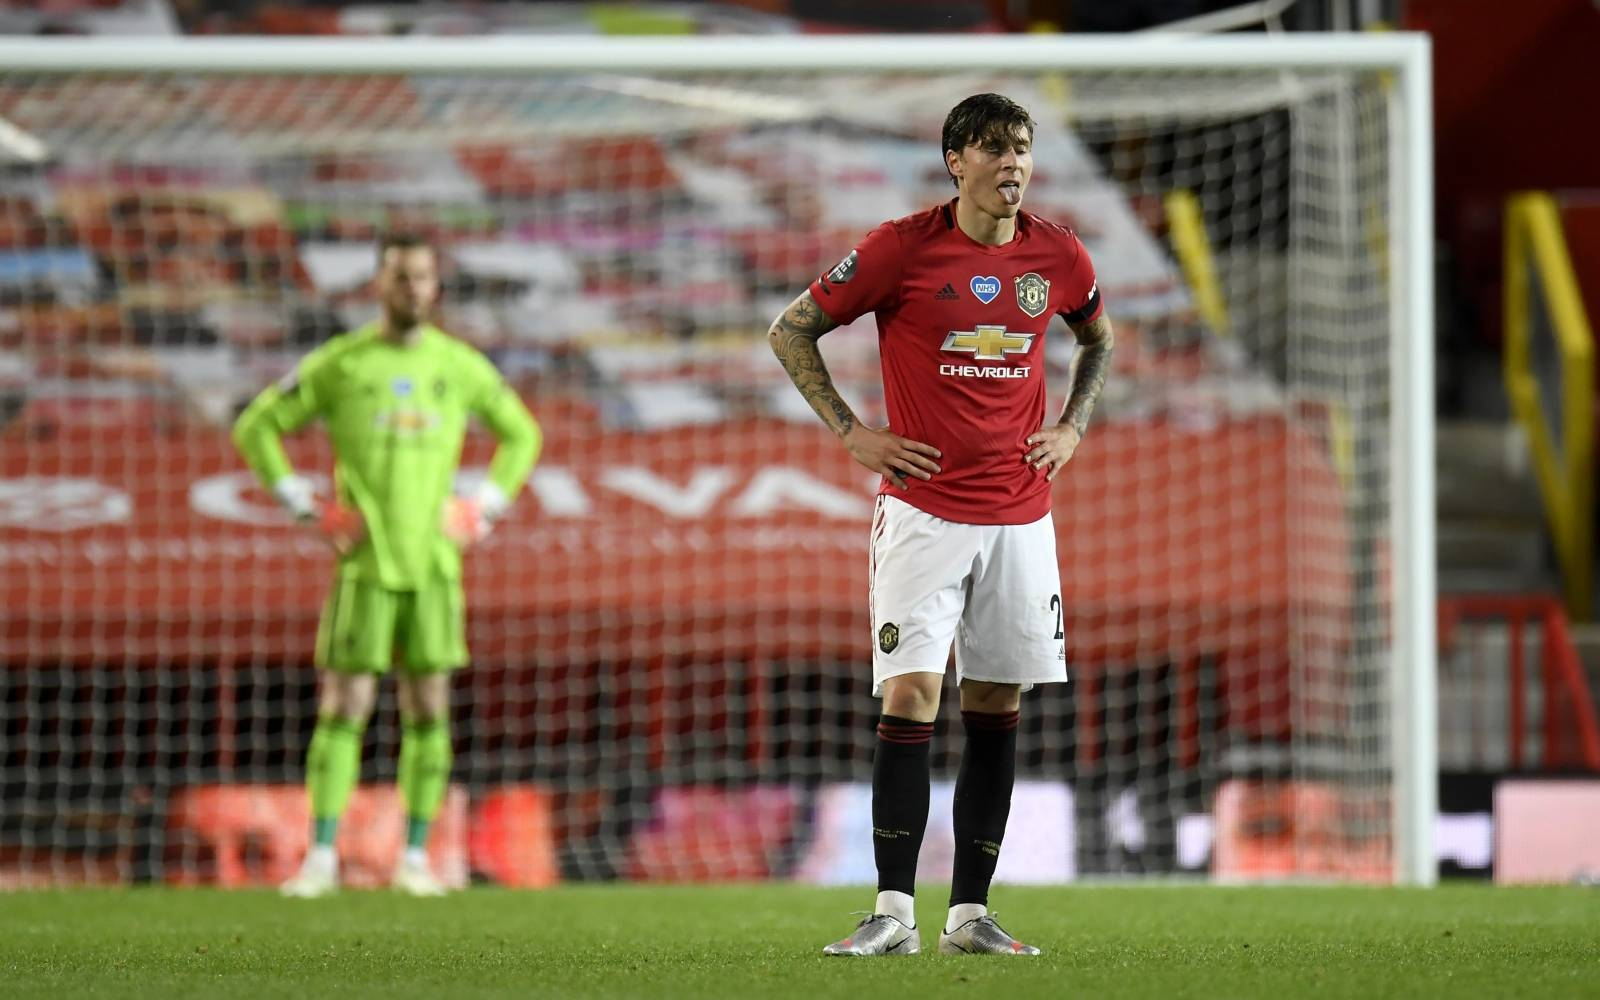 Manchester United v Southampton - Premier League - Old Trafford